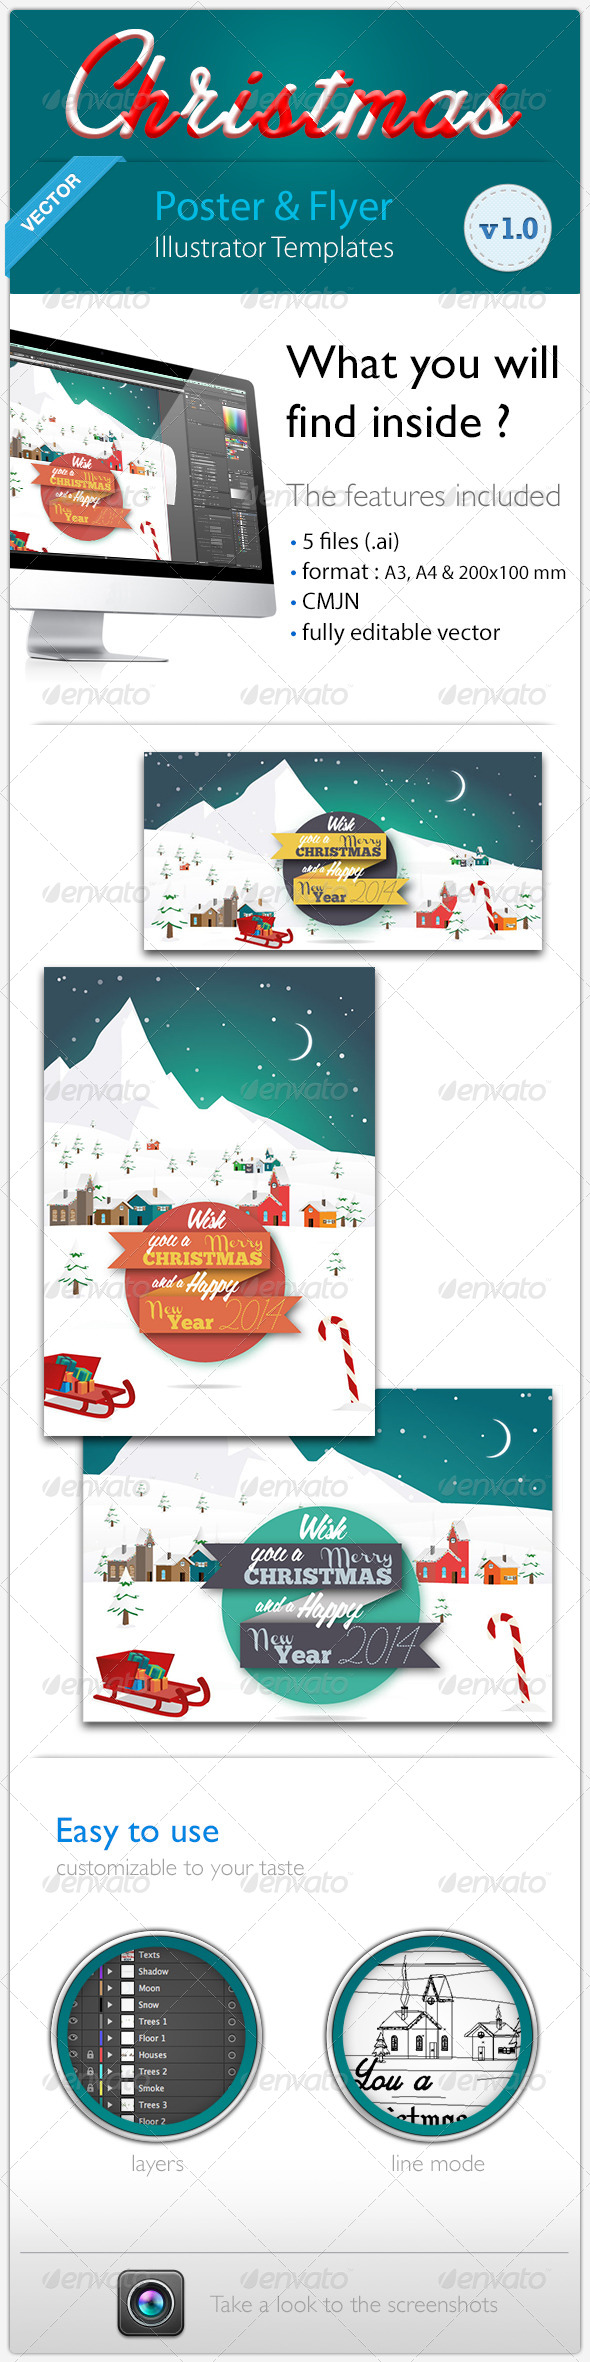 GraphicRiver Christmas & New Year Poster & Flyer 6174364